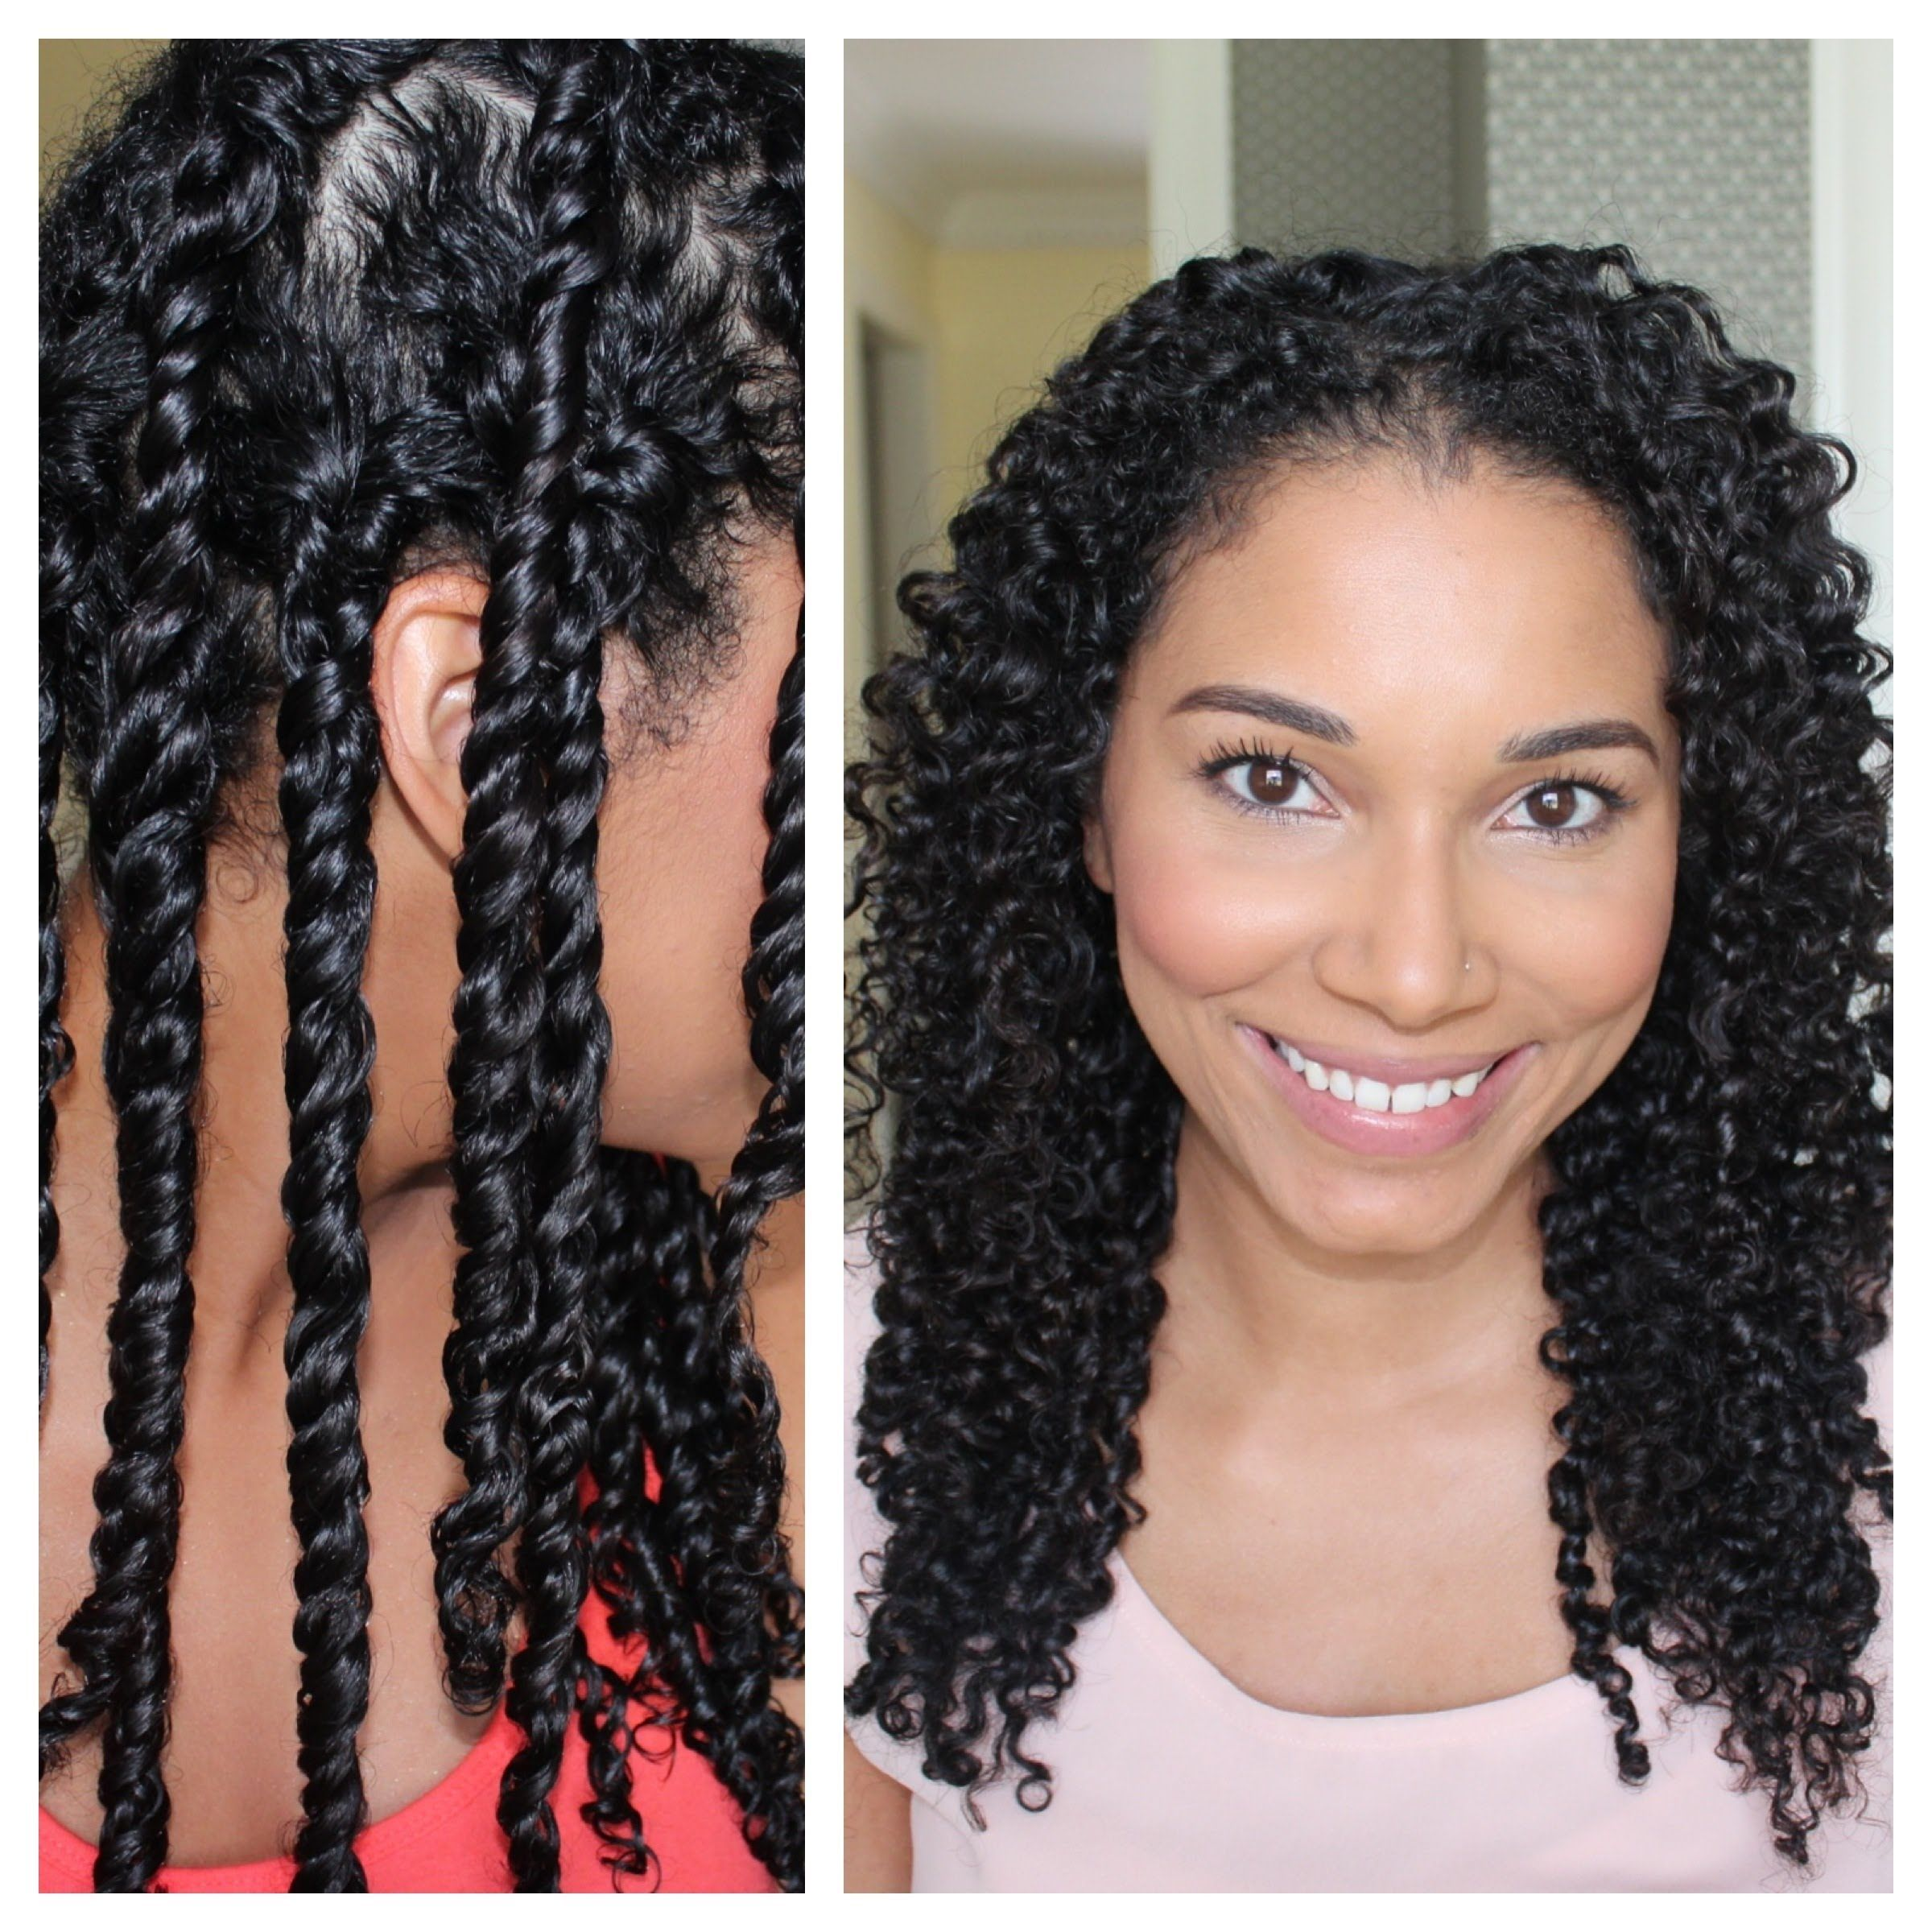 Pin By African American Hairstyles On Ohmycurlz Natural Hair Styles Hair Styles Curly Hair Styles Naturally